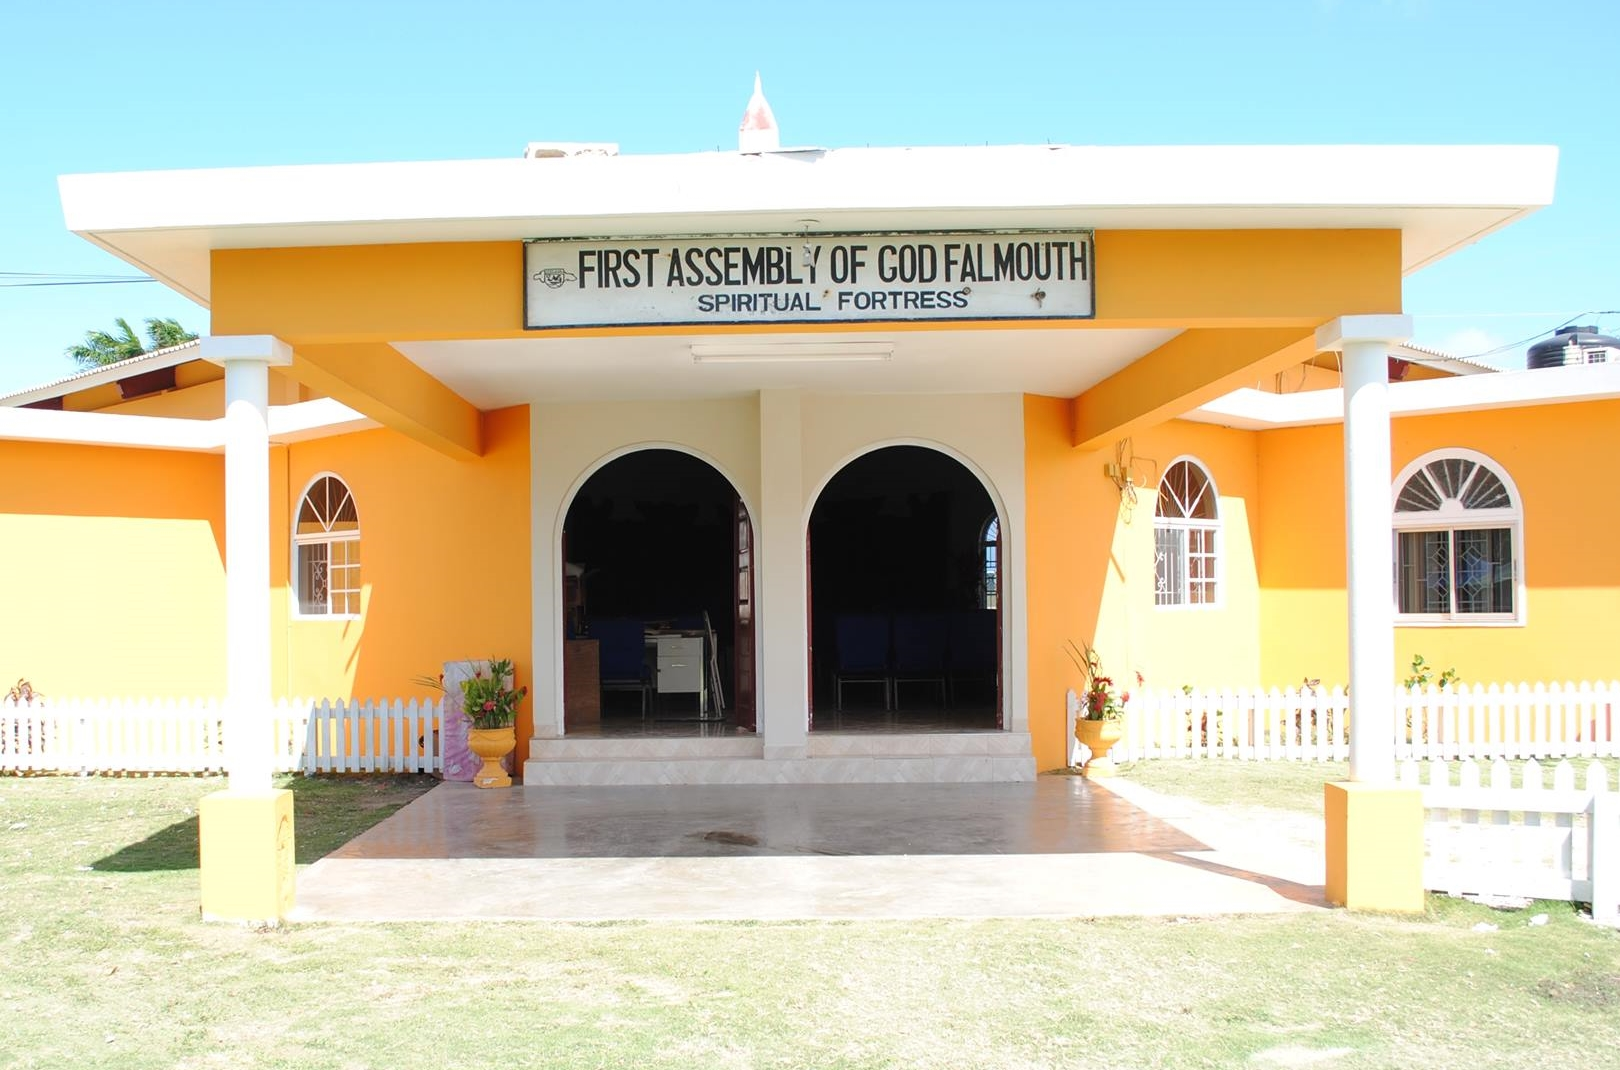 First Assembly of god, falmouth Jamaica